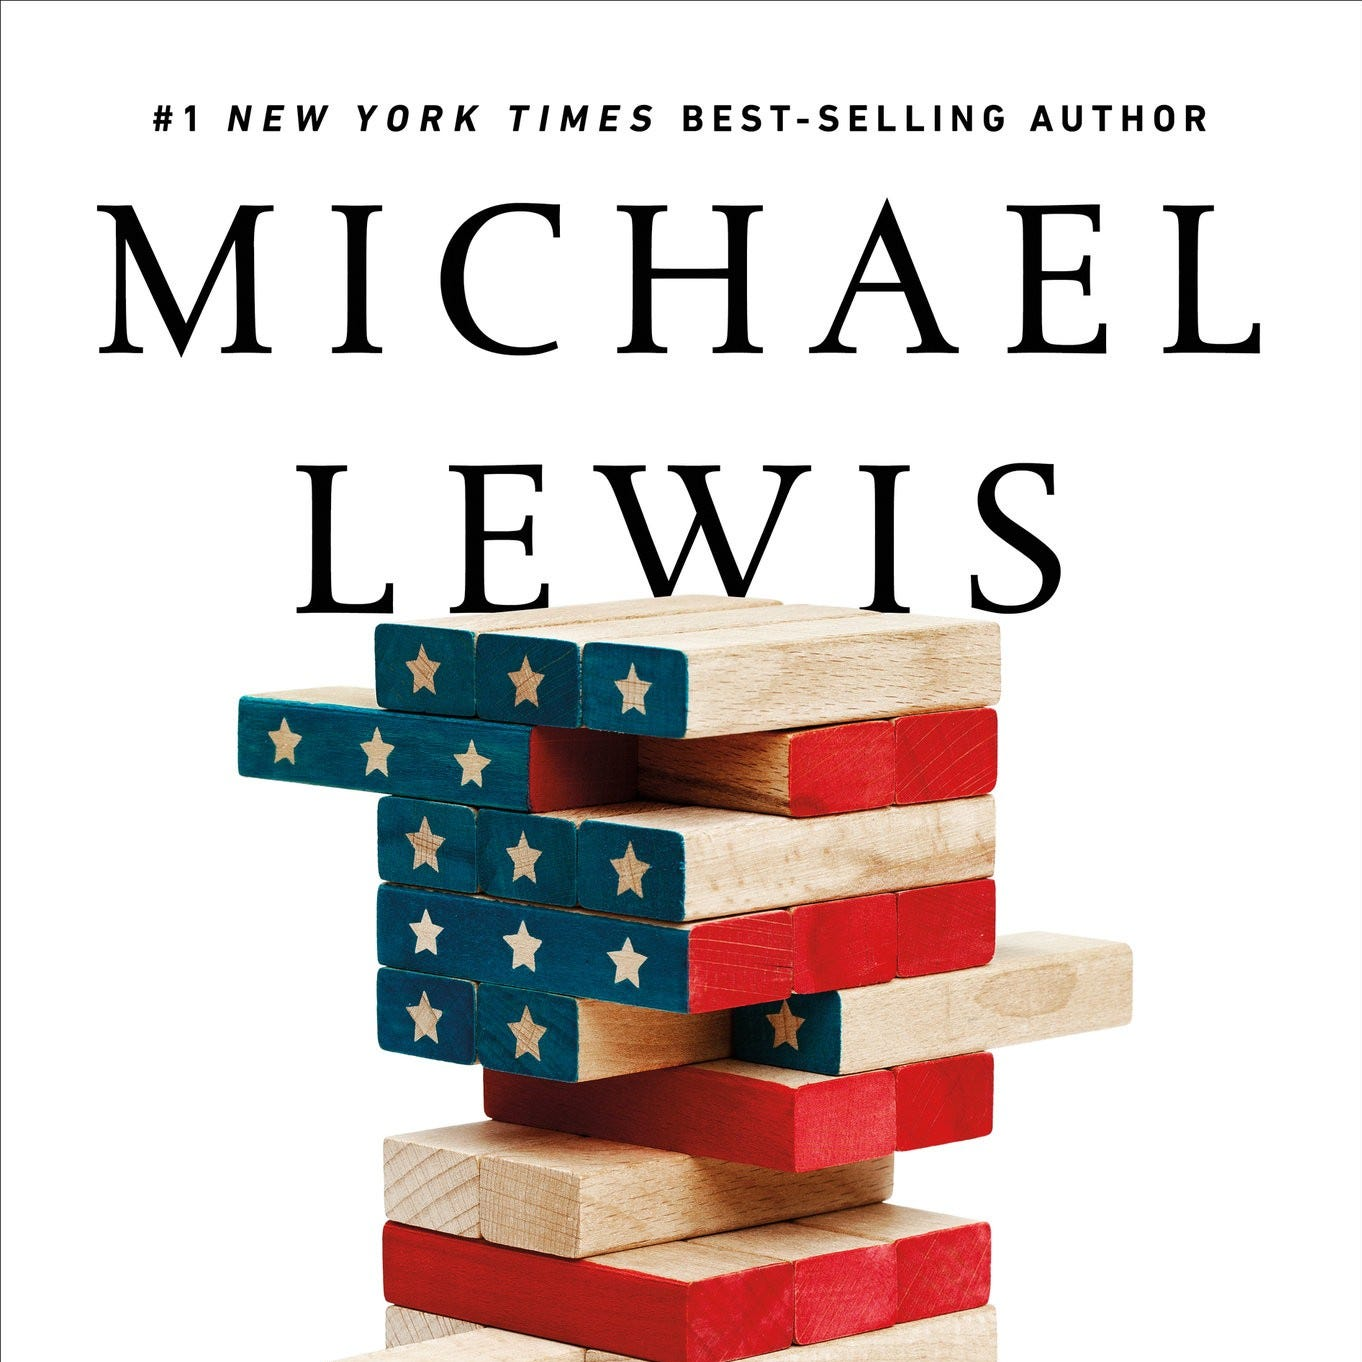 Best-selling author Michael Lewis slams Trump administration in 'The Fifth Risk'